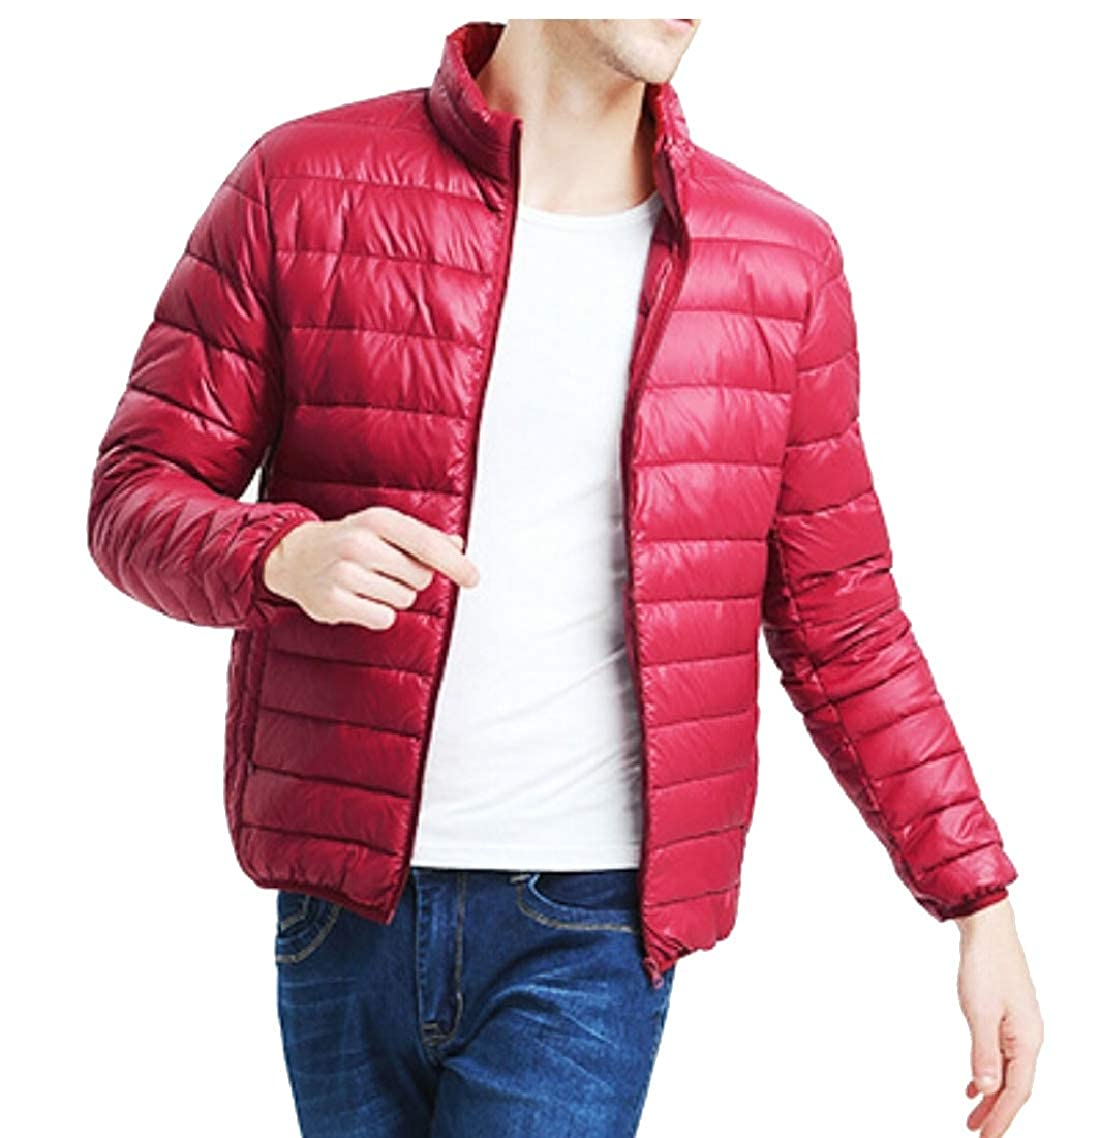 Yayu Mens Classic Outwear Lightweight Quilted Puffer Down Jacket